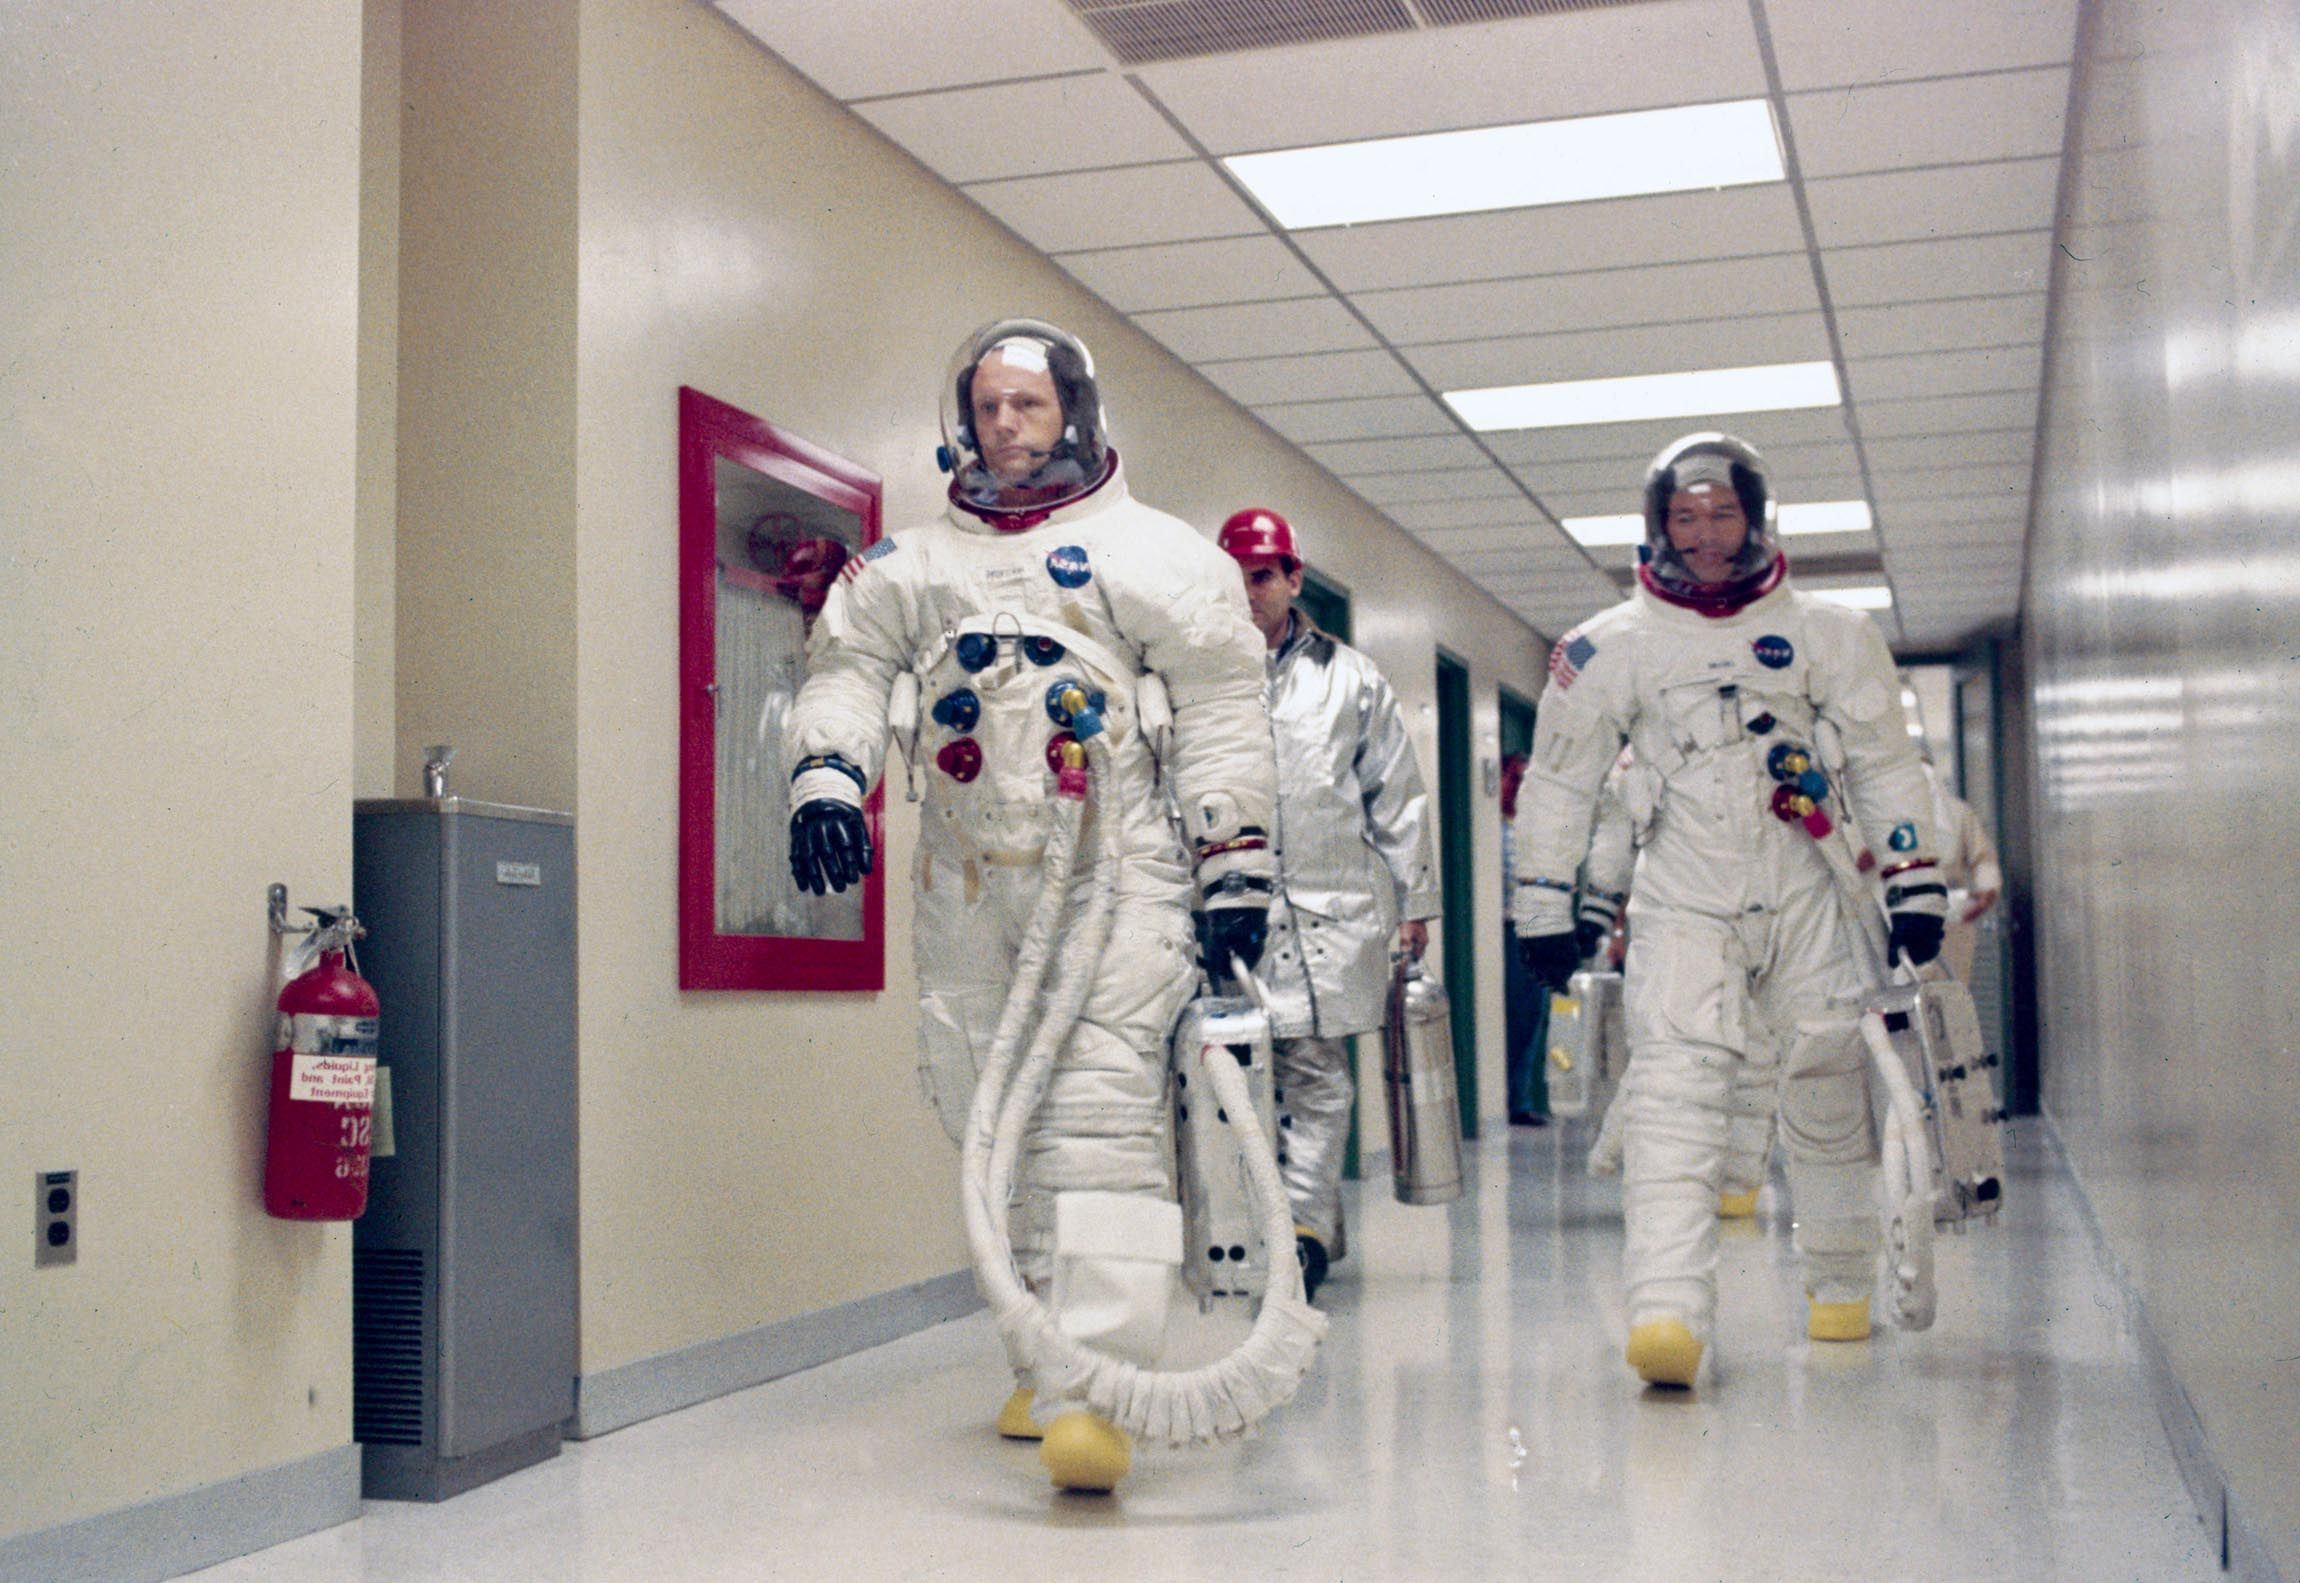 These Photos of the Apollo 11 Moon Landing Will Leave You in Awe